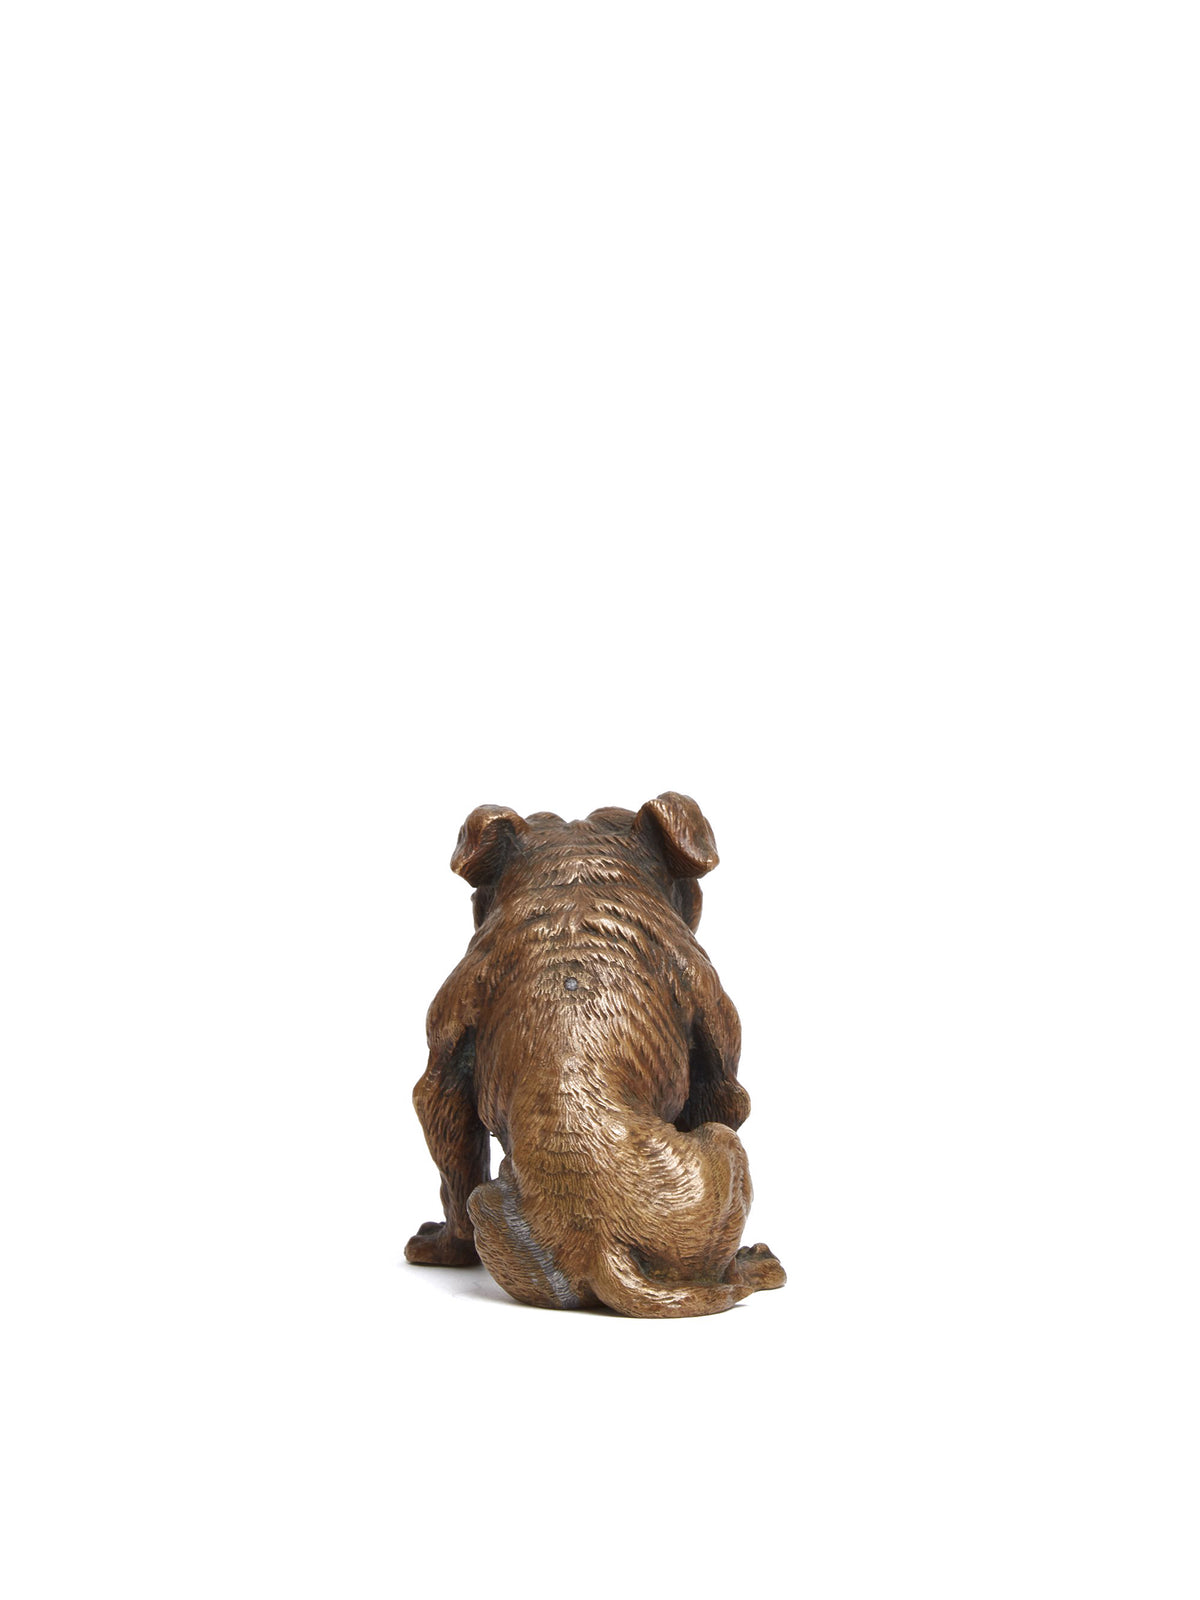 Archive Bronze Bulldog Paperweight